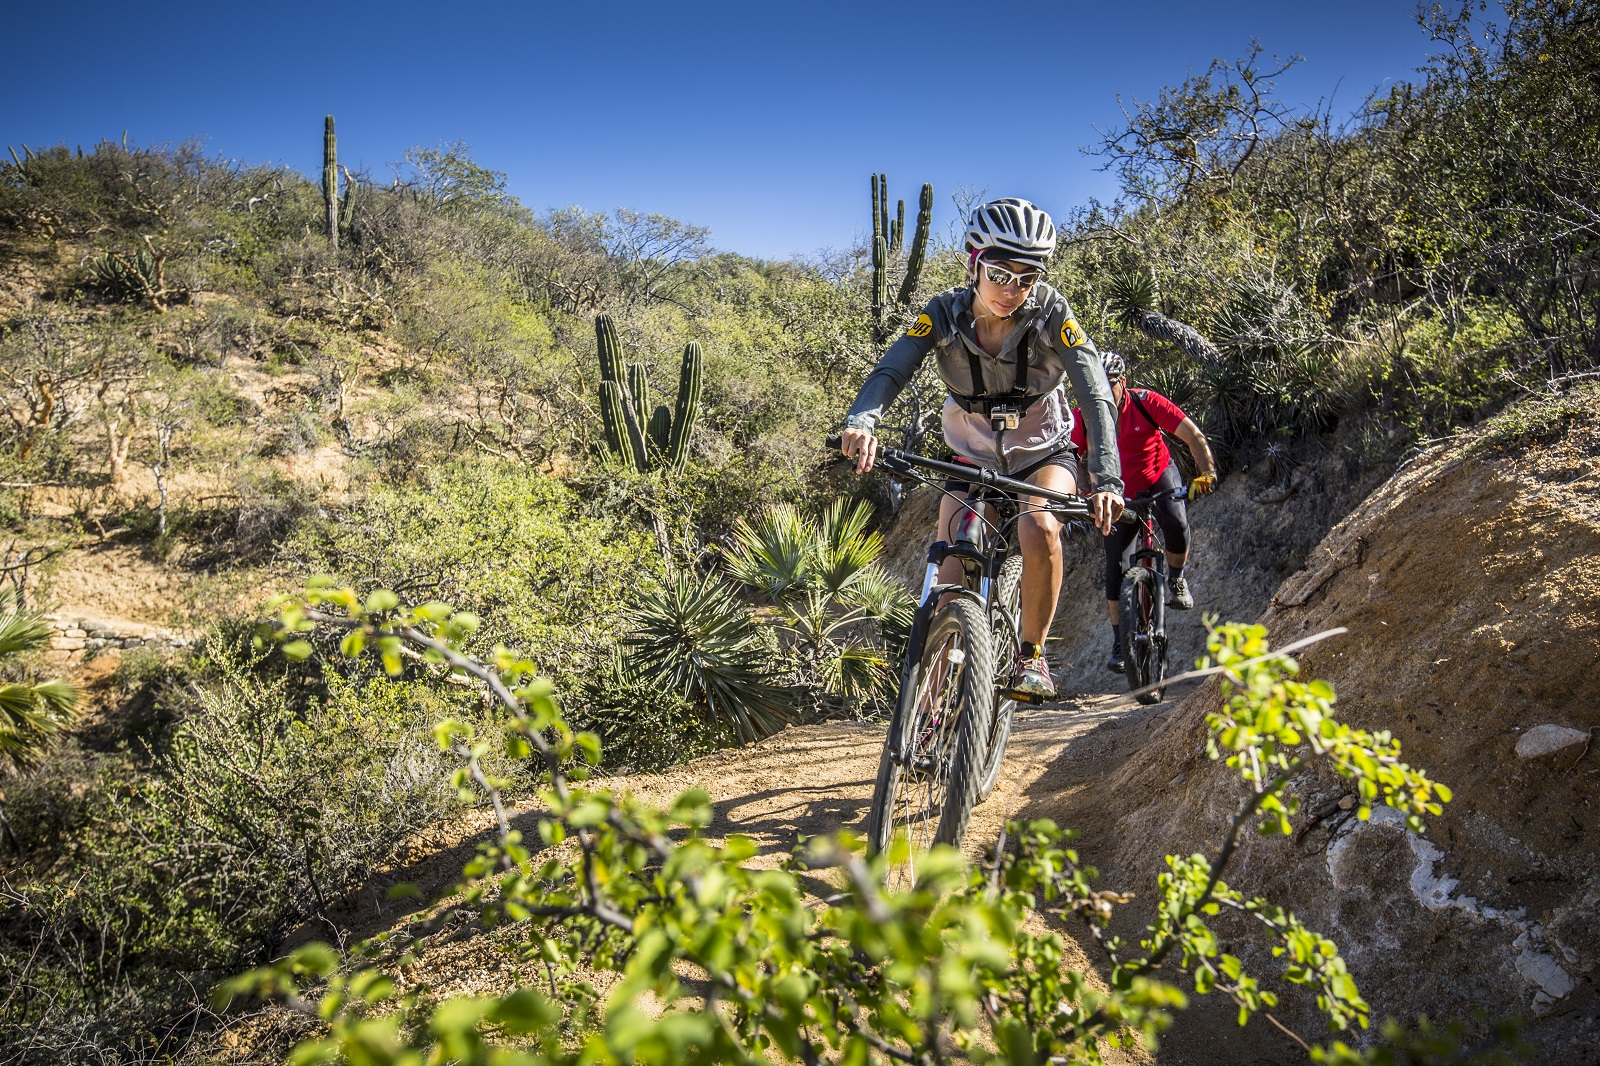 MOUNTAIN BIKING & HIKING TRAILS - Explore and unwind on our private intermediate and advanced trails.